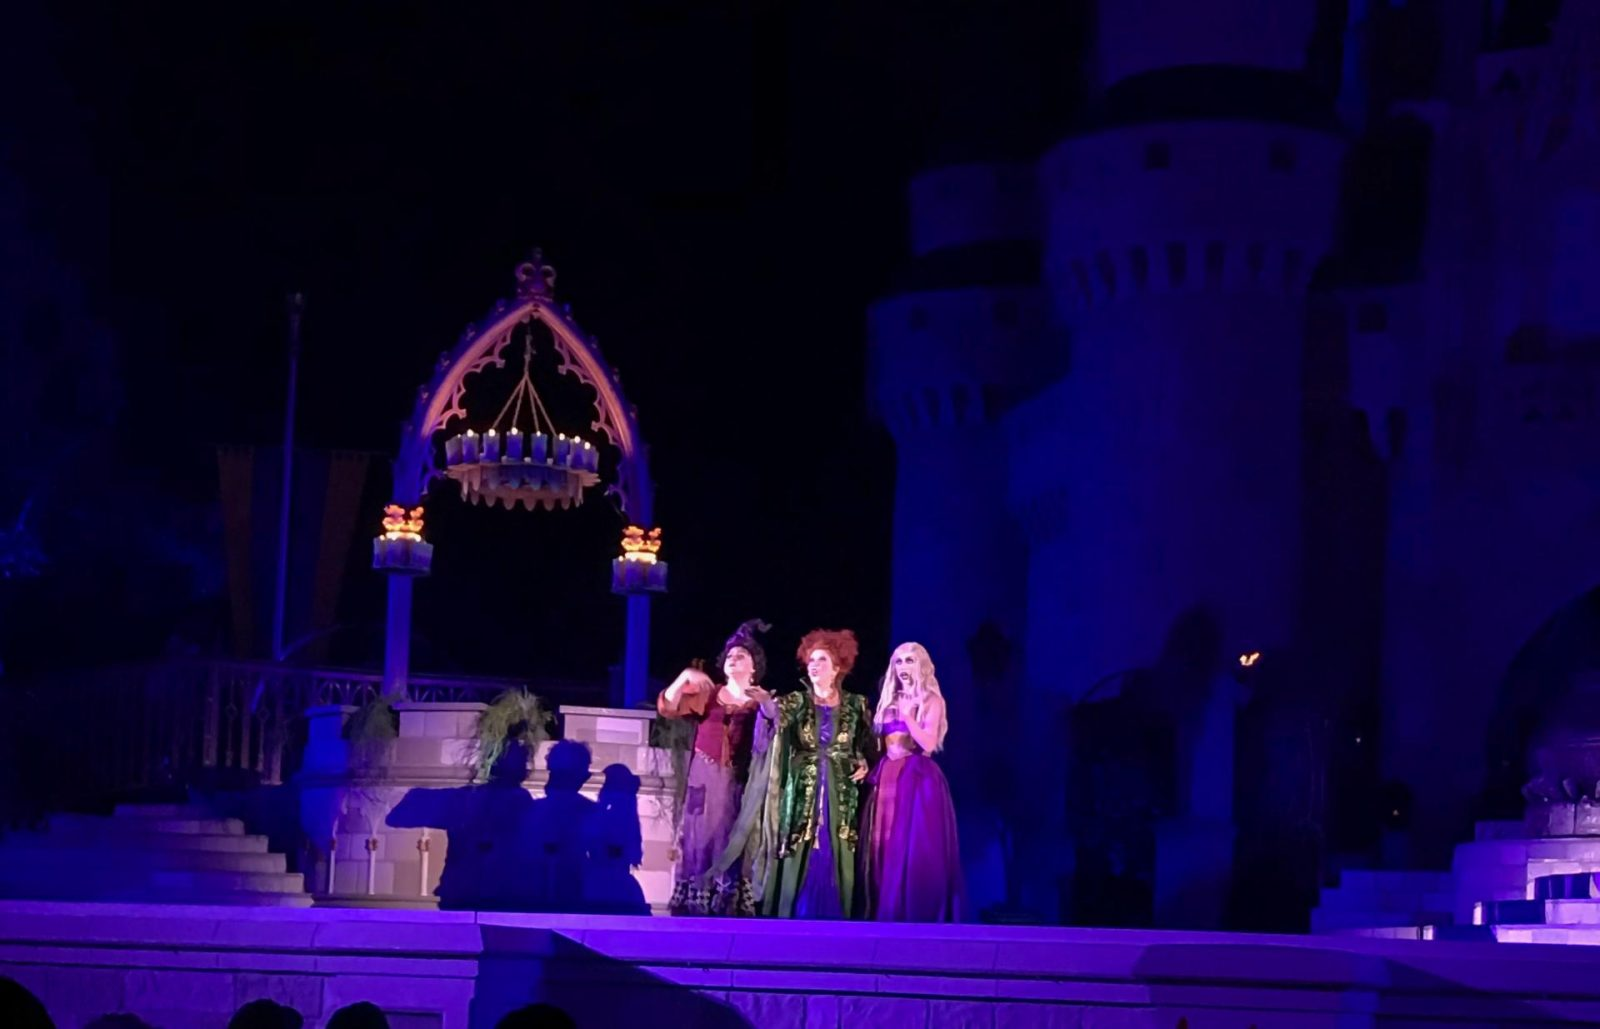 Hocus Pocus Sanderson Sisters show at mickey's not so scary halloween party